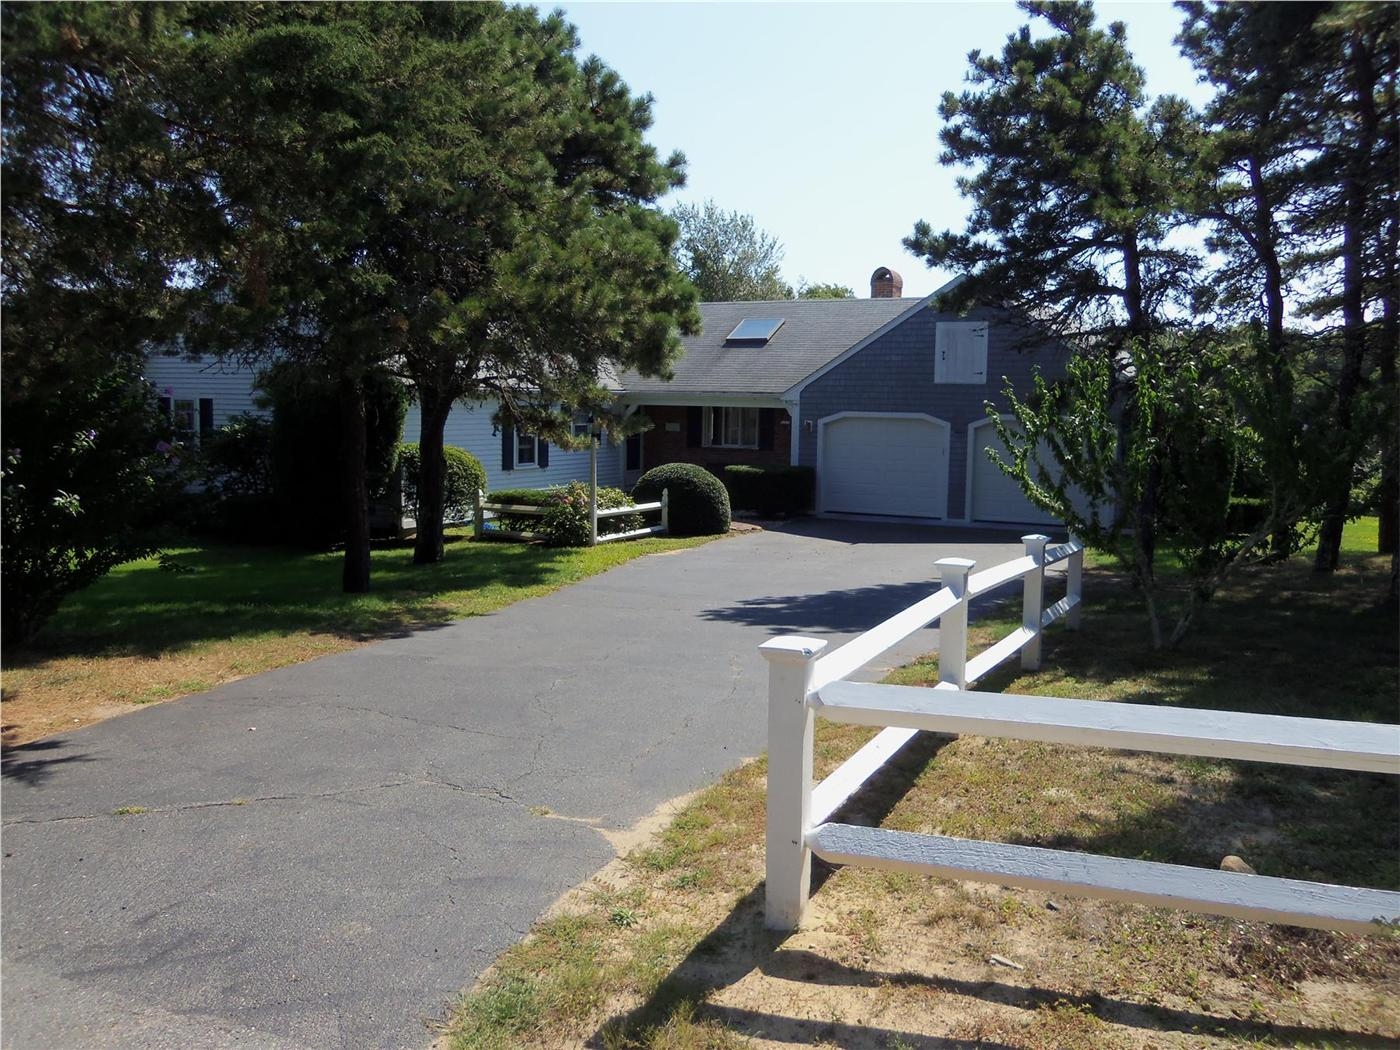 Dennis Vacation Rental Home In Cape Cod Ma 02660 Id 18137